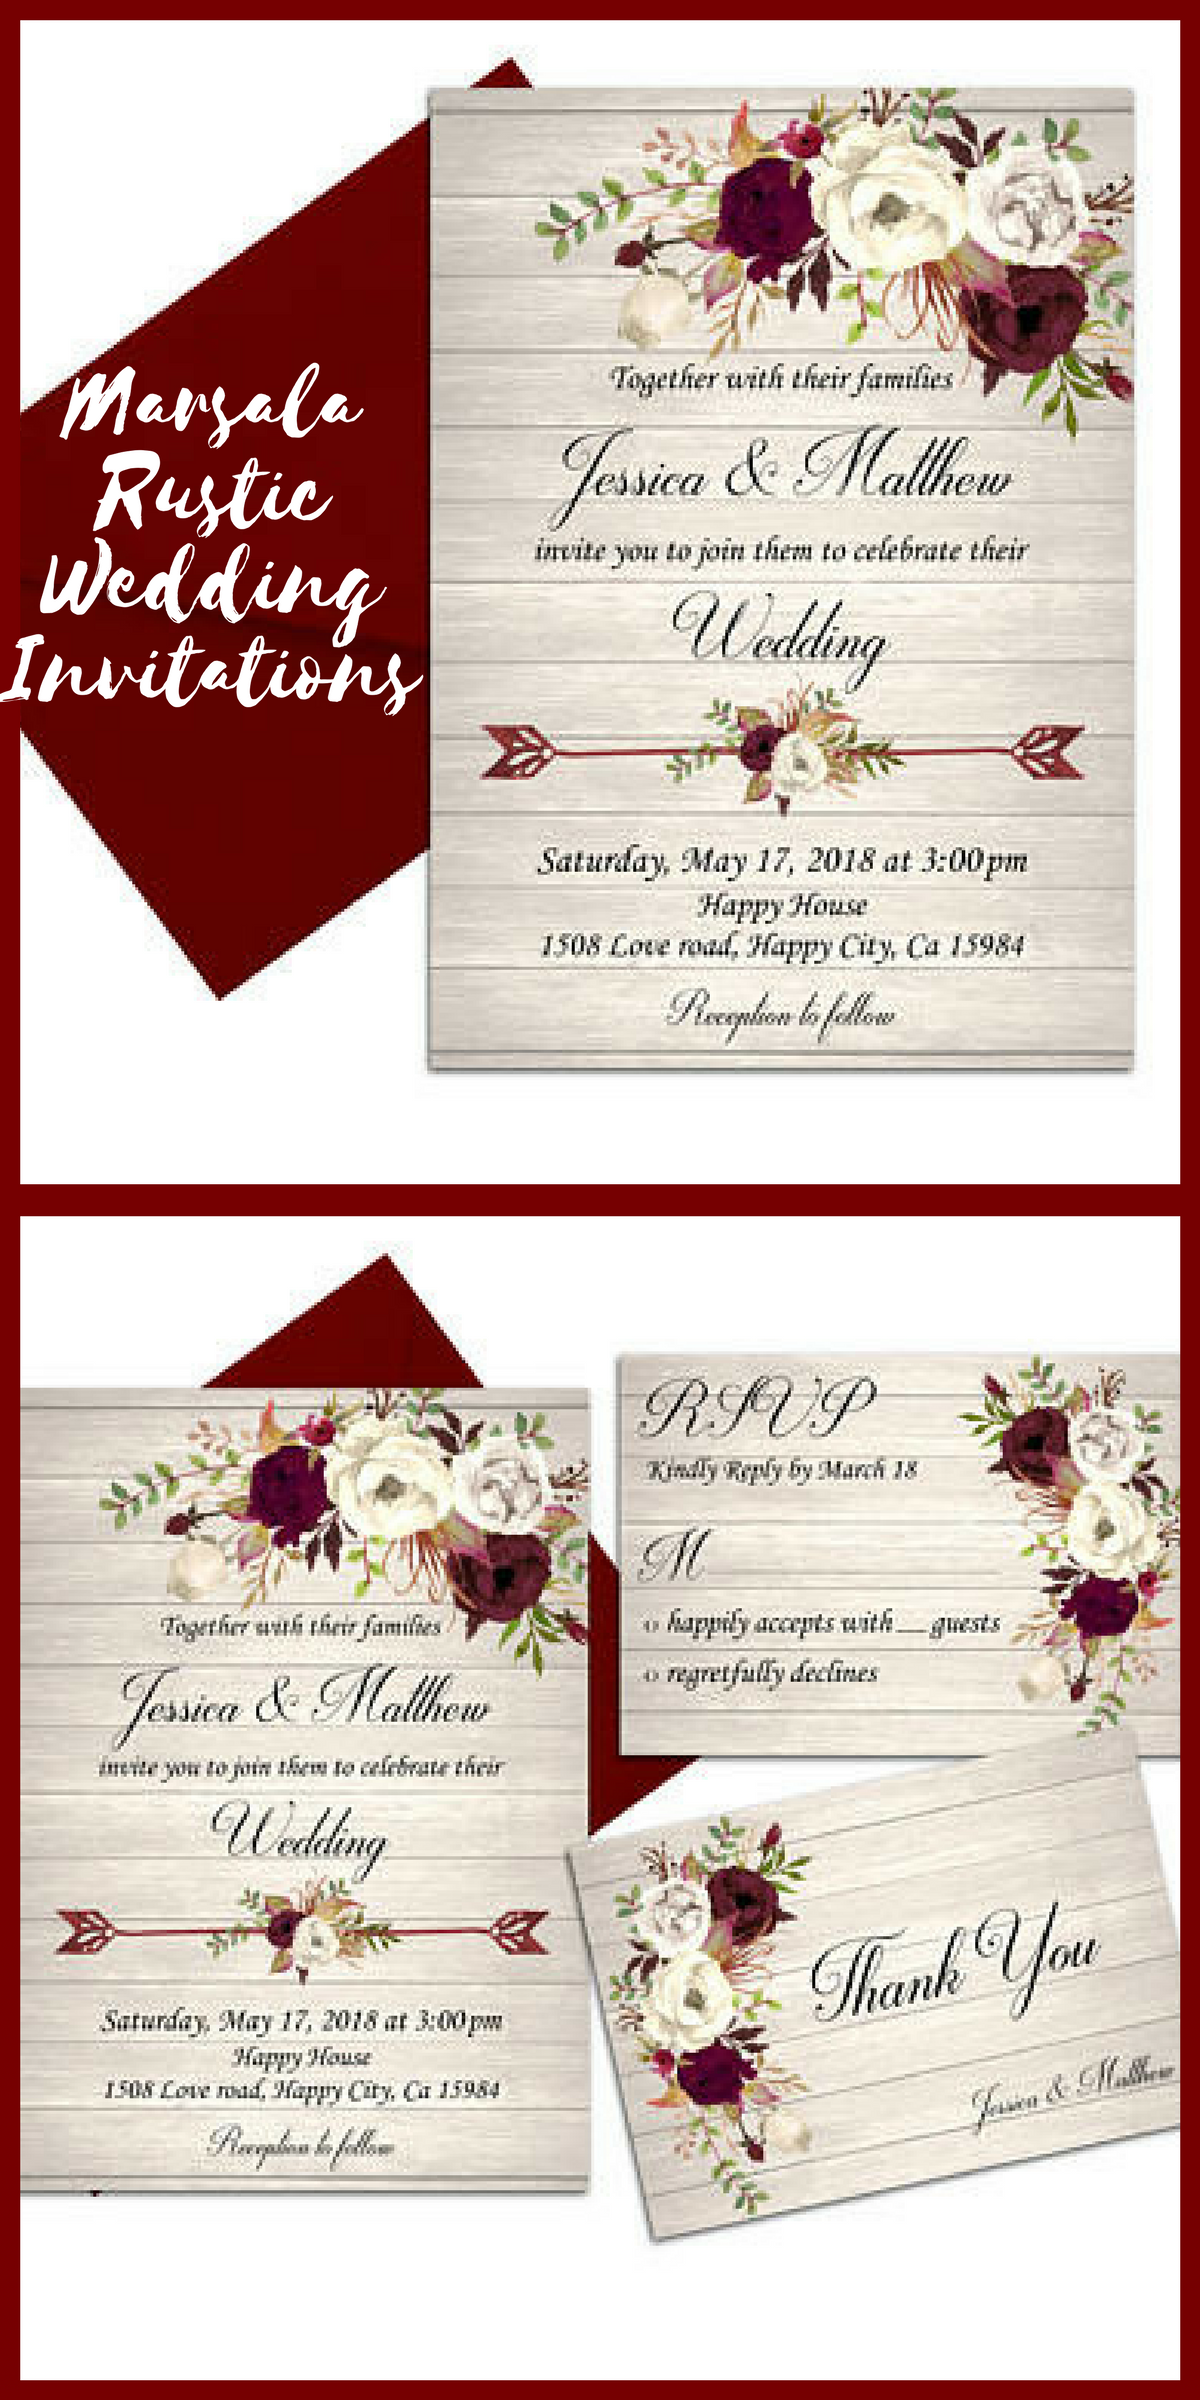 Marsala Wedding Invitation Ivory Rustic Wedding Invitation Printable ...